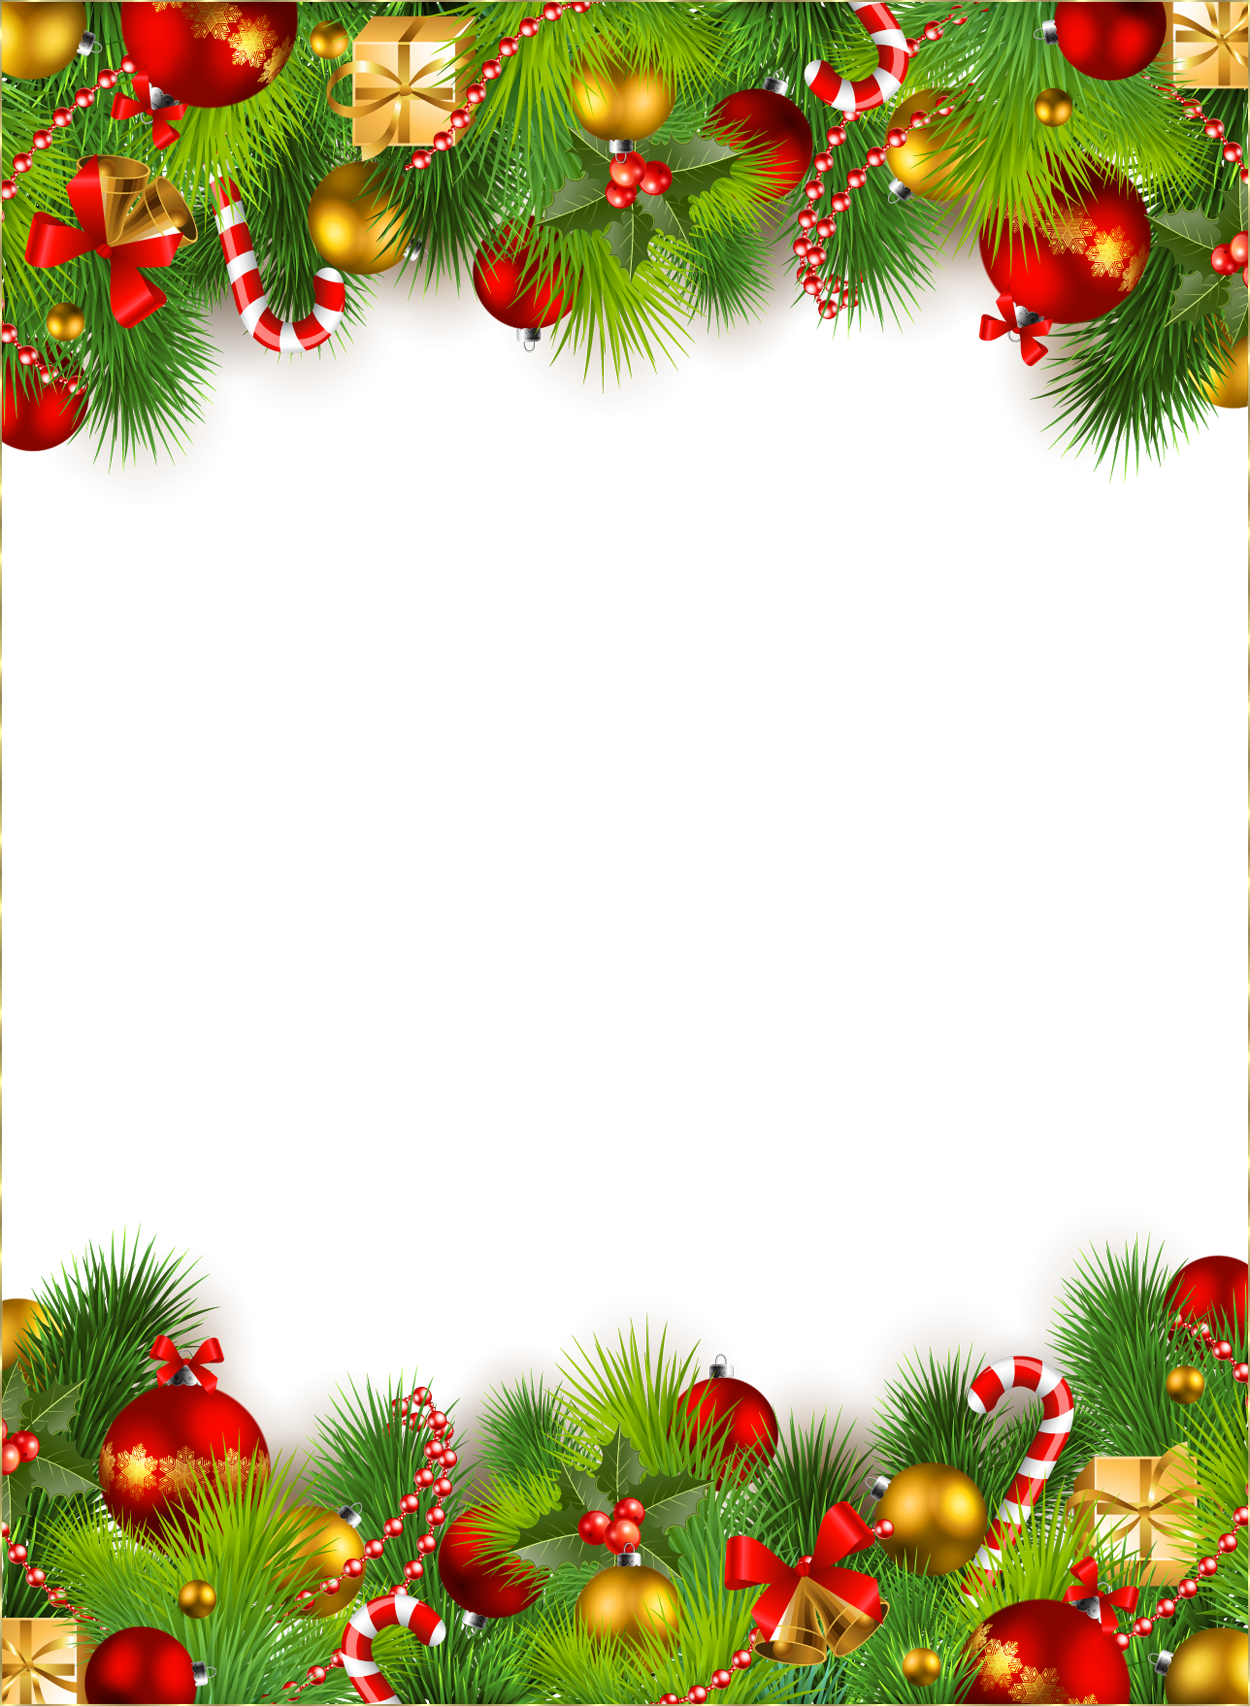 Holiday snowflake clipart border clip freeuse library Cute Christmas PNG Photo Frame with Christmas Ornaments | Gallery ... clip freeuse library